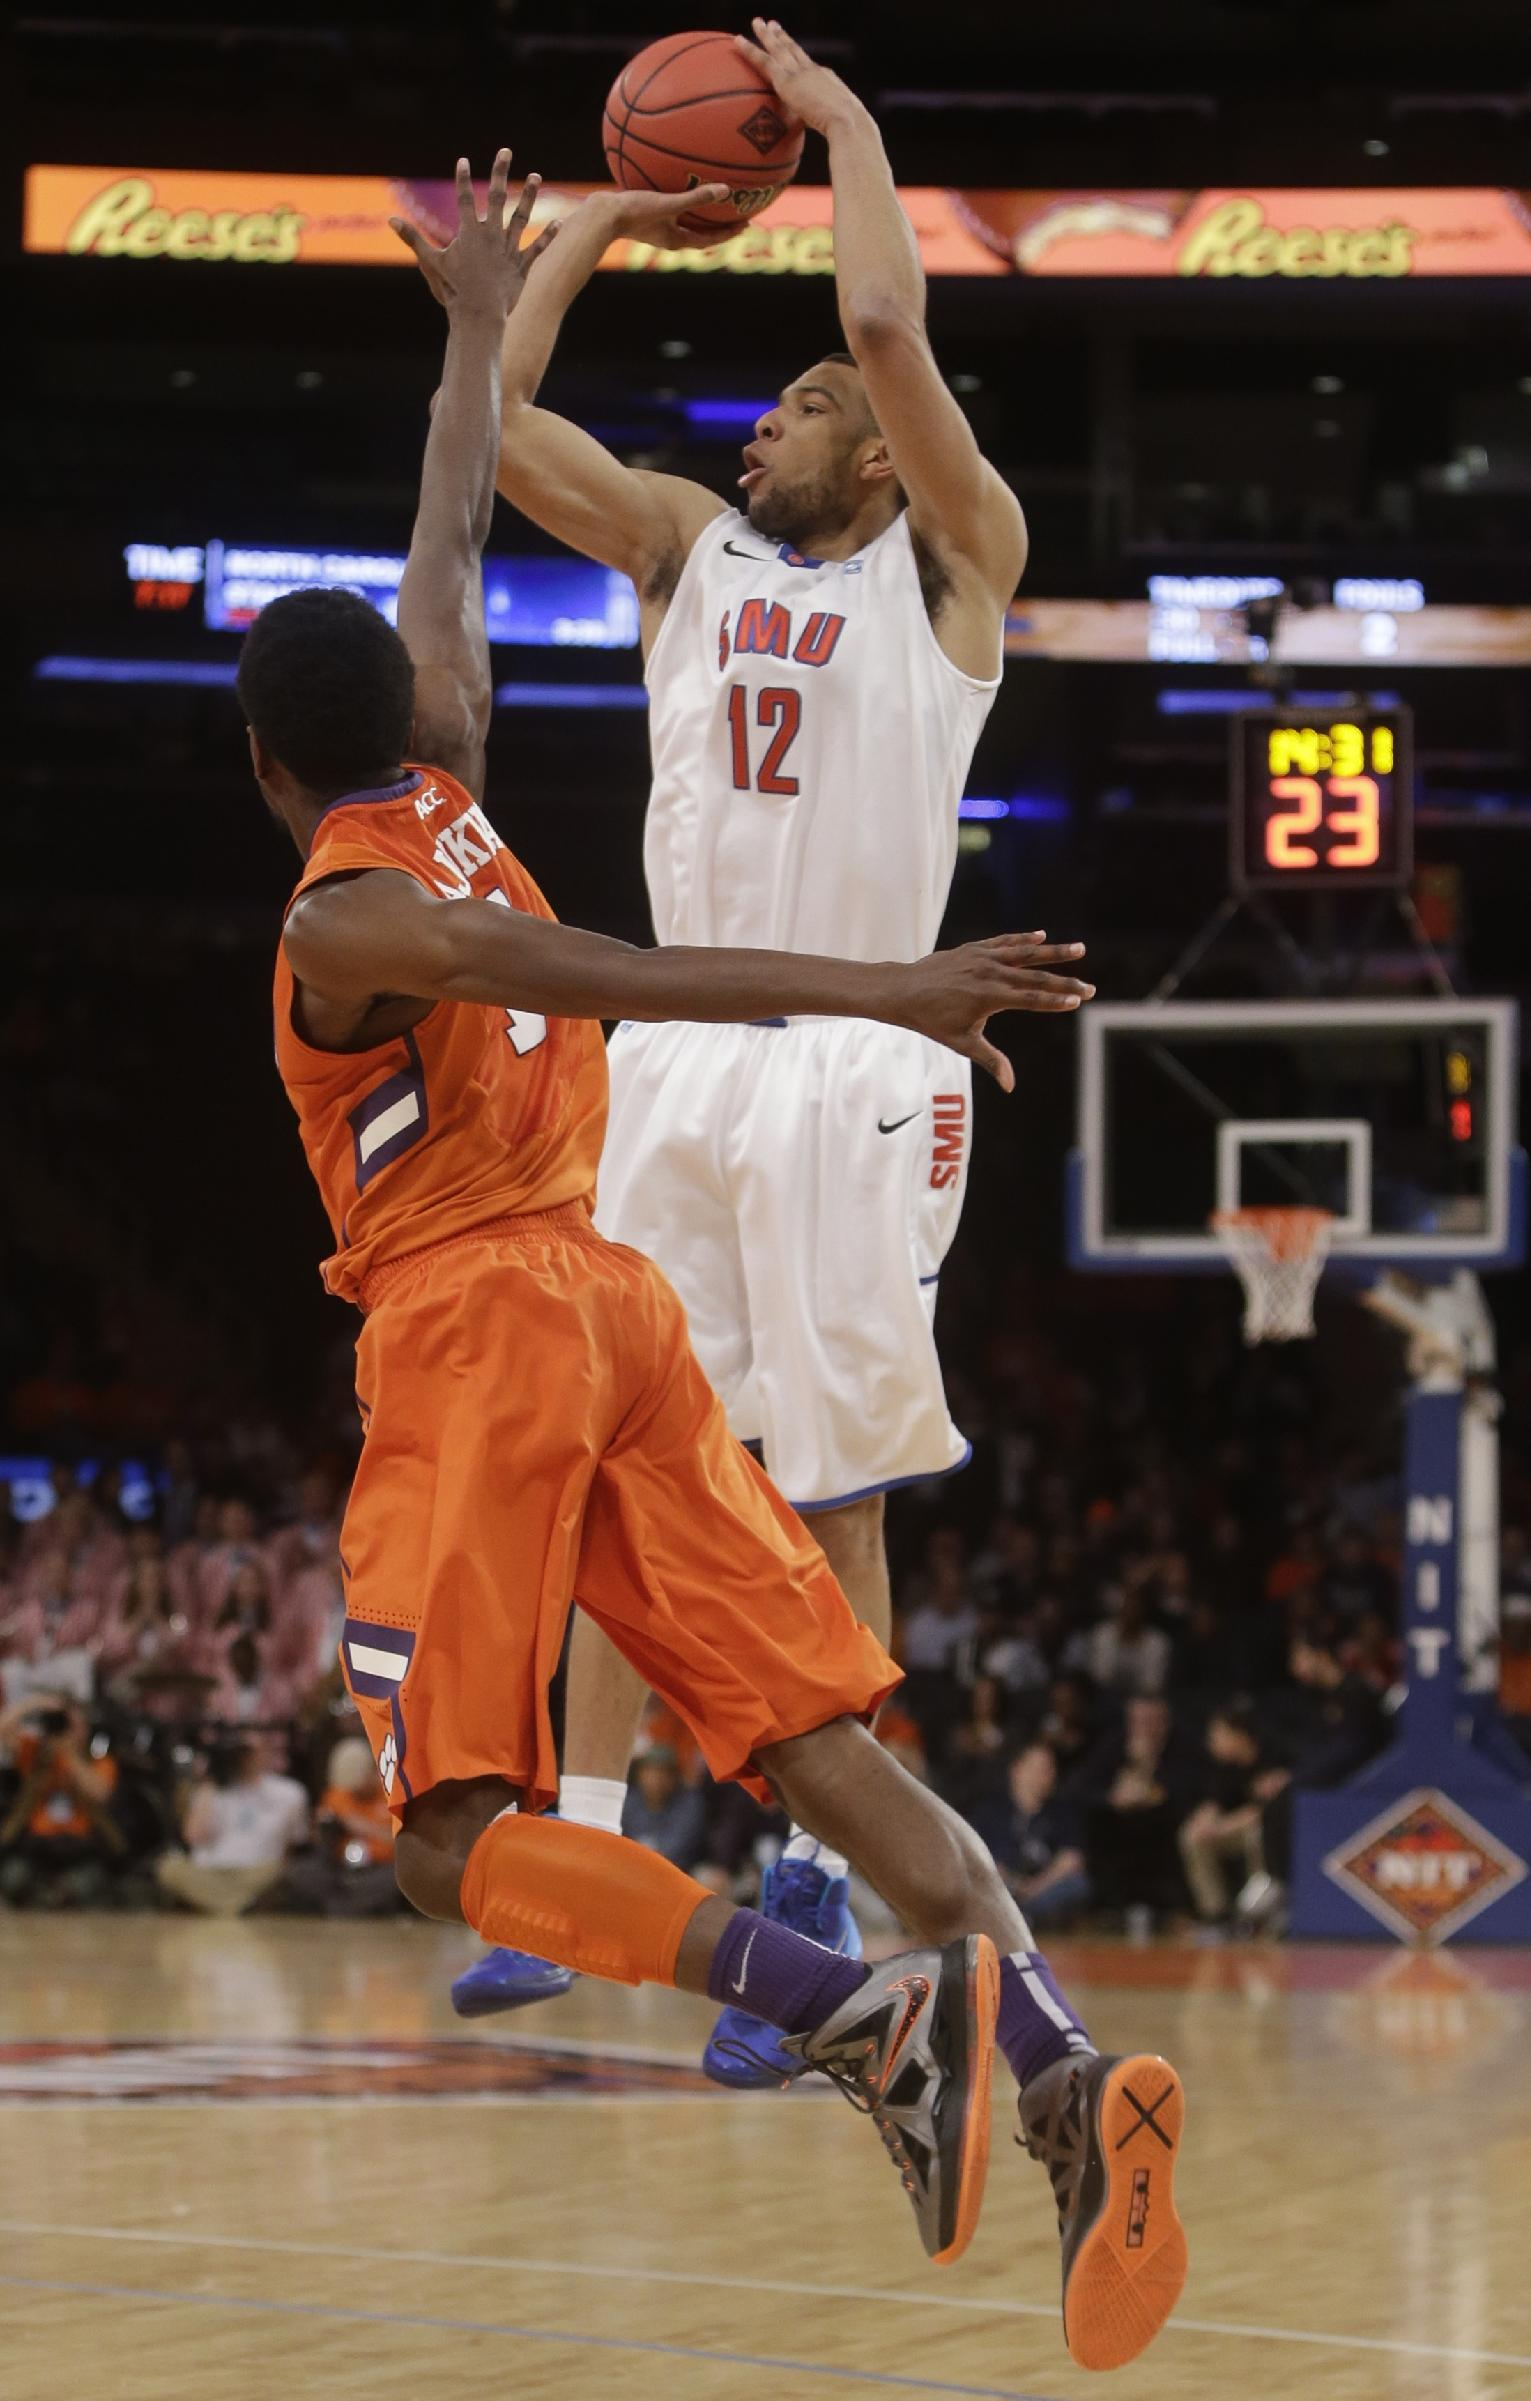 SMU rallies past Clemson 65-59 in NIT semifinals